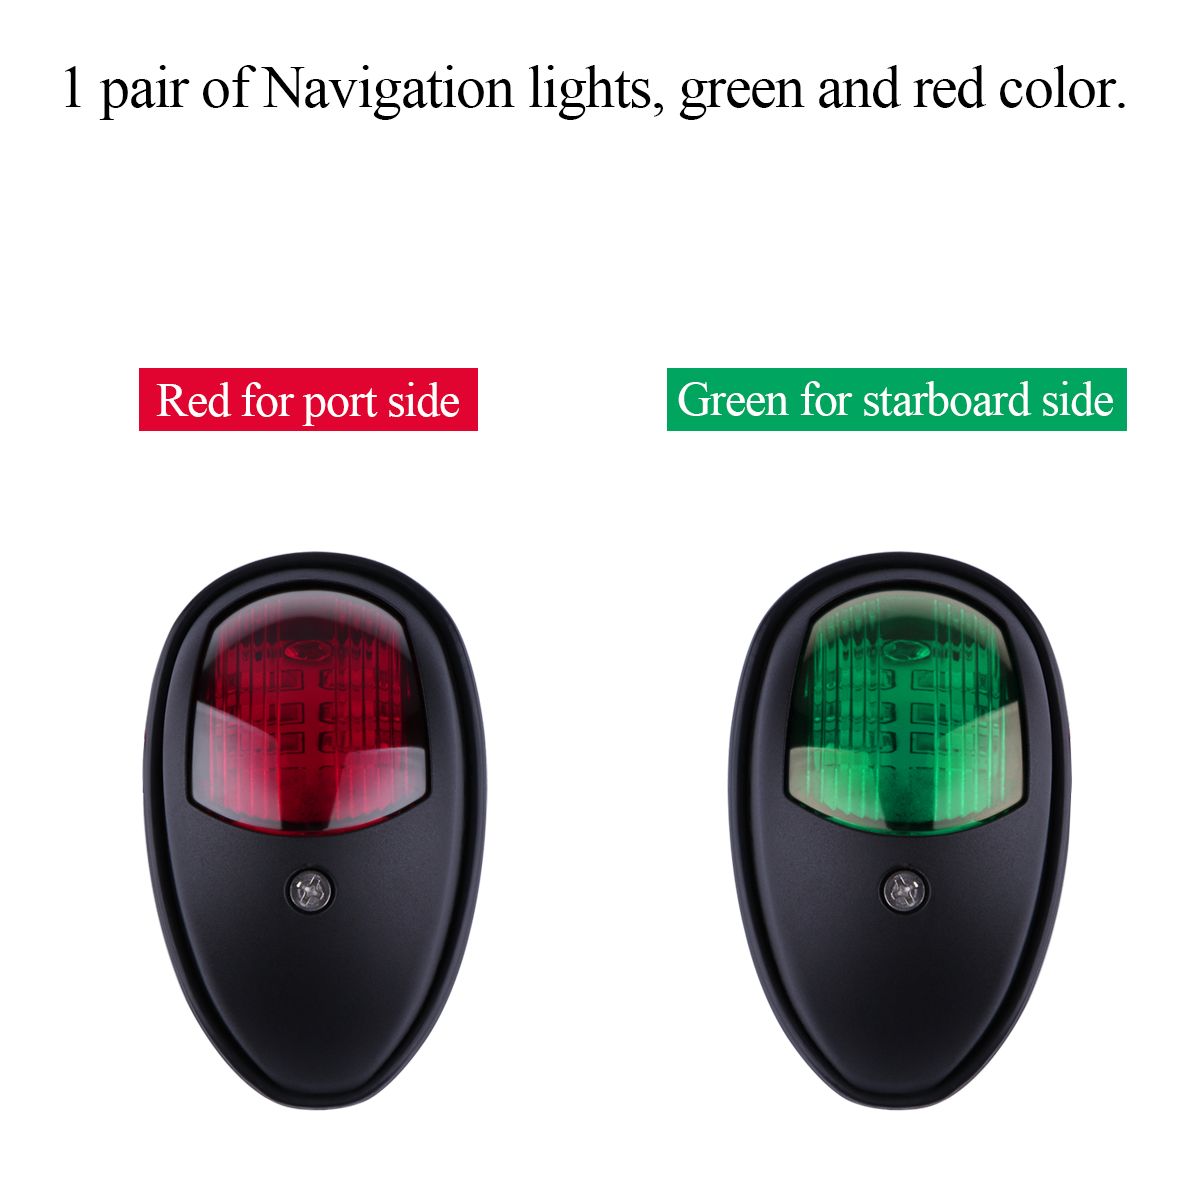 small resolution of 1 pair of navigation lights green and red color red for port side and green for starboard side it can be use as bow light stern light or running light